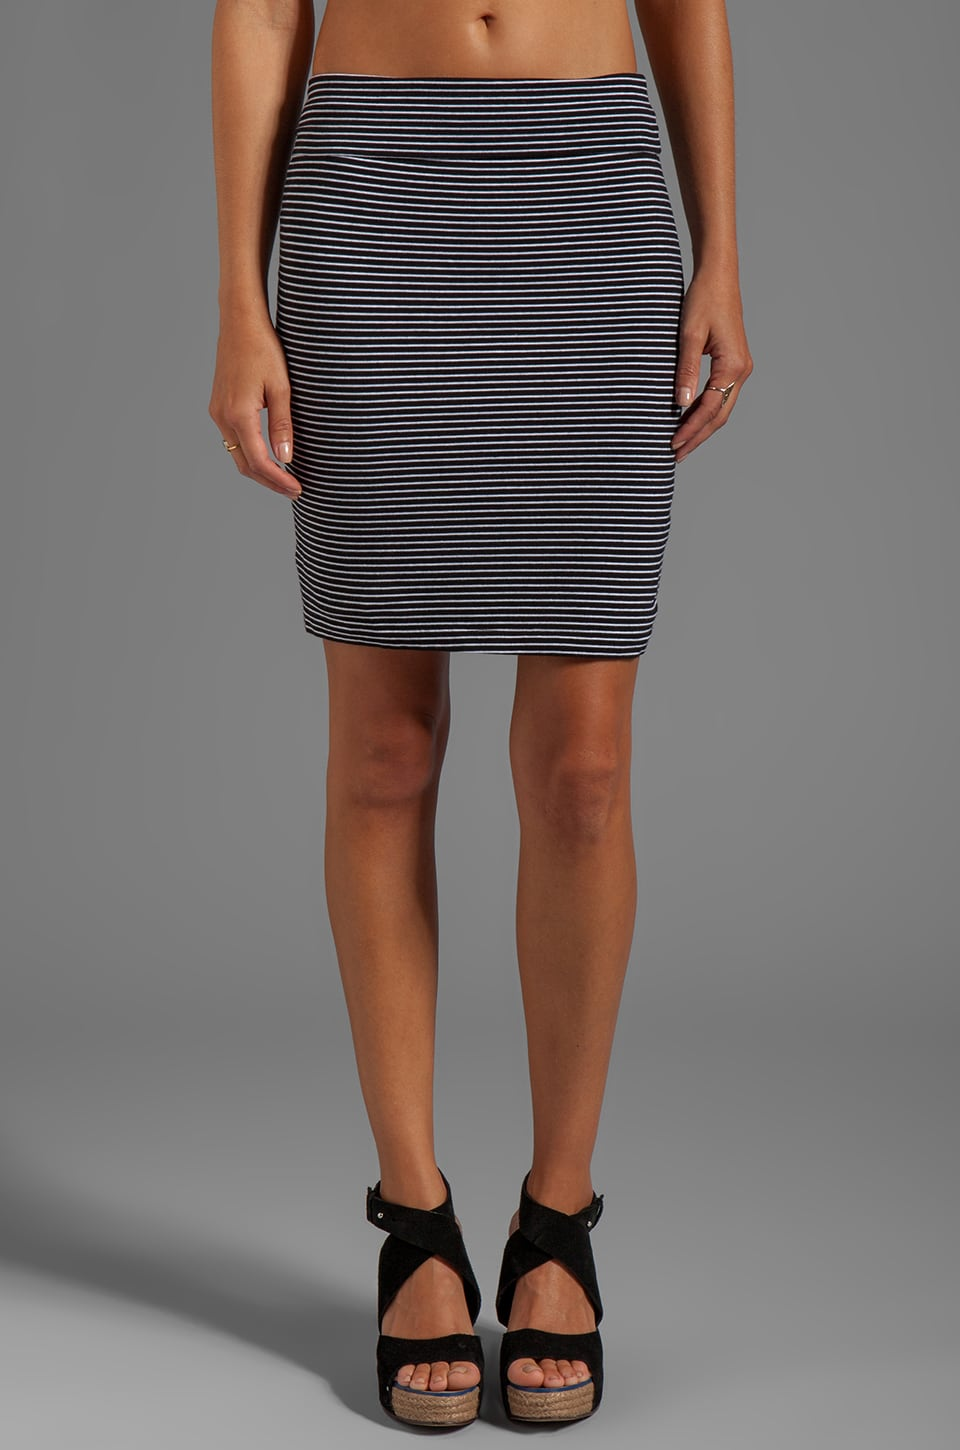 Bobi Cotton Lycra Pencil Skirt in Black Stripe